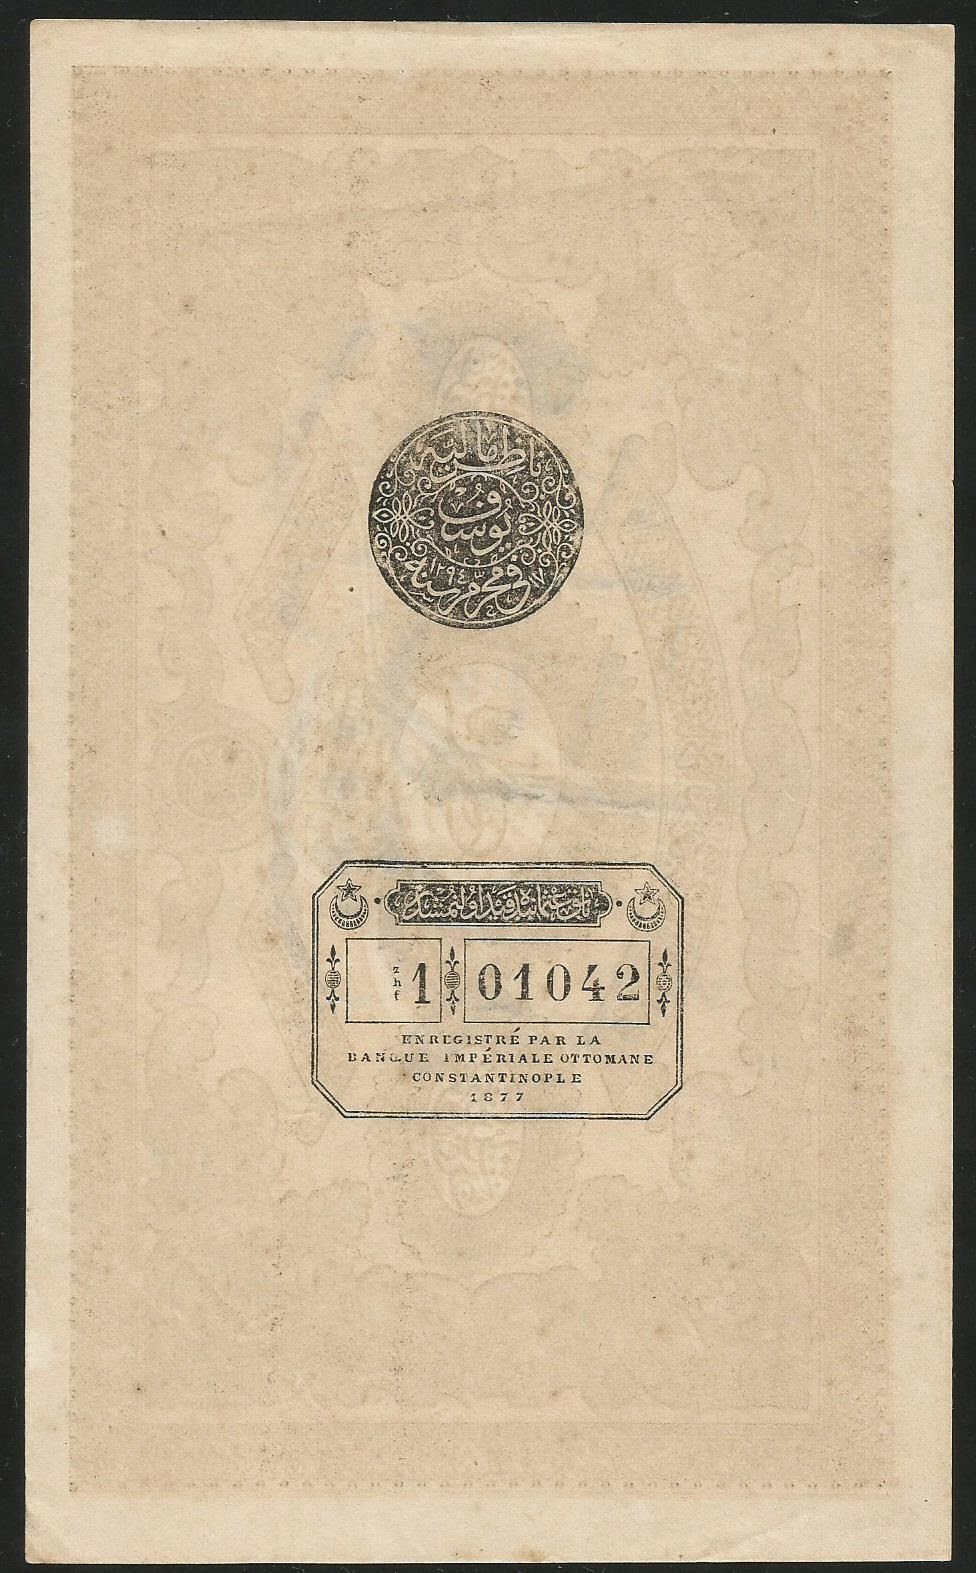 Ottoman Empire 100 Kuruş banknote 1877|World Banknotes & Coins Pictures | Old Money, Foreign ...